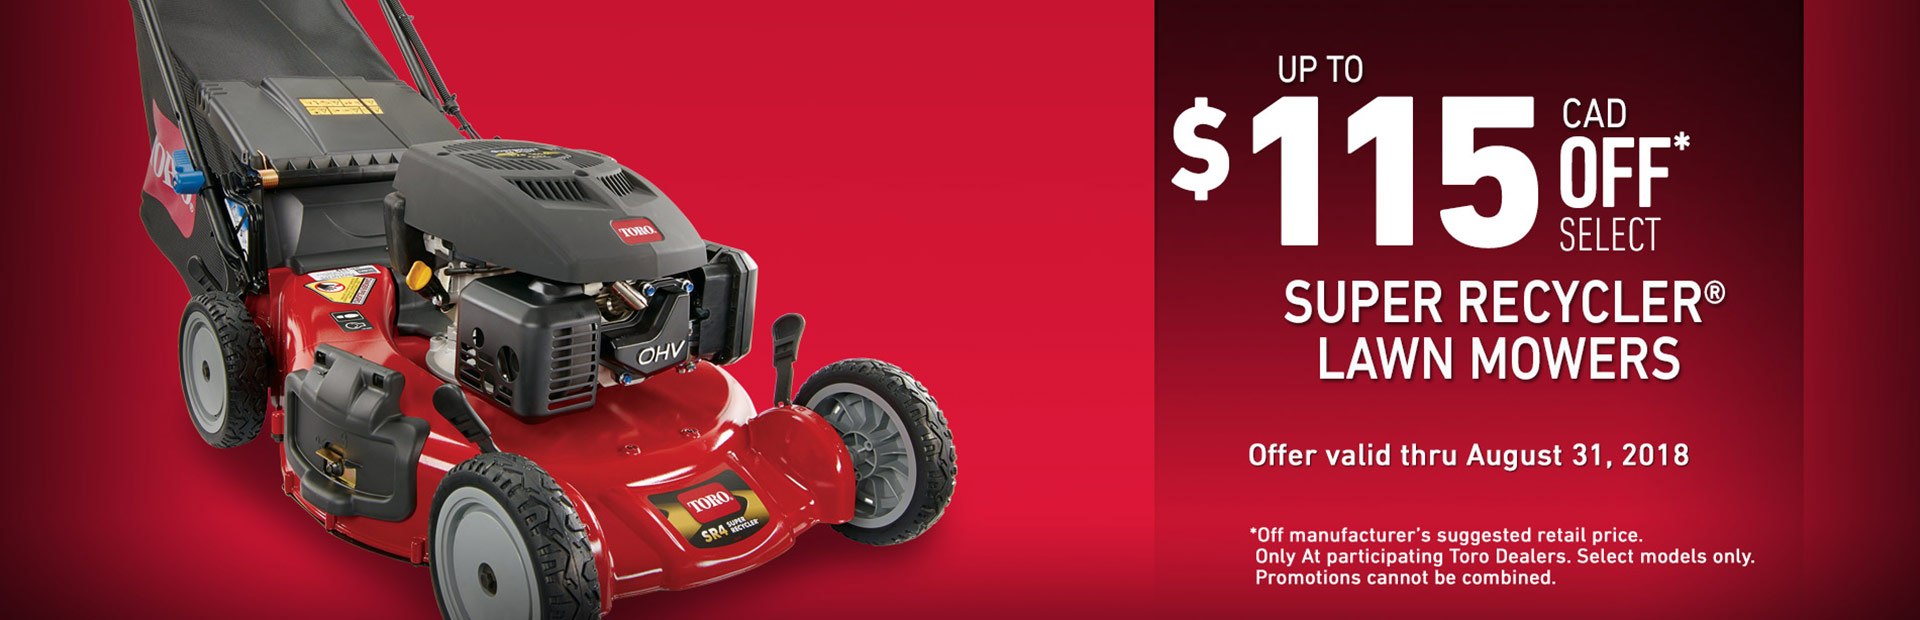 $115 CAD OFF Select Super Recycler Mowers